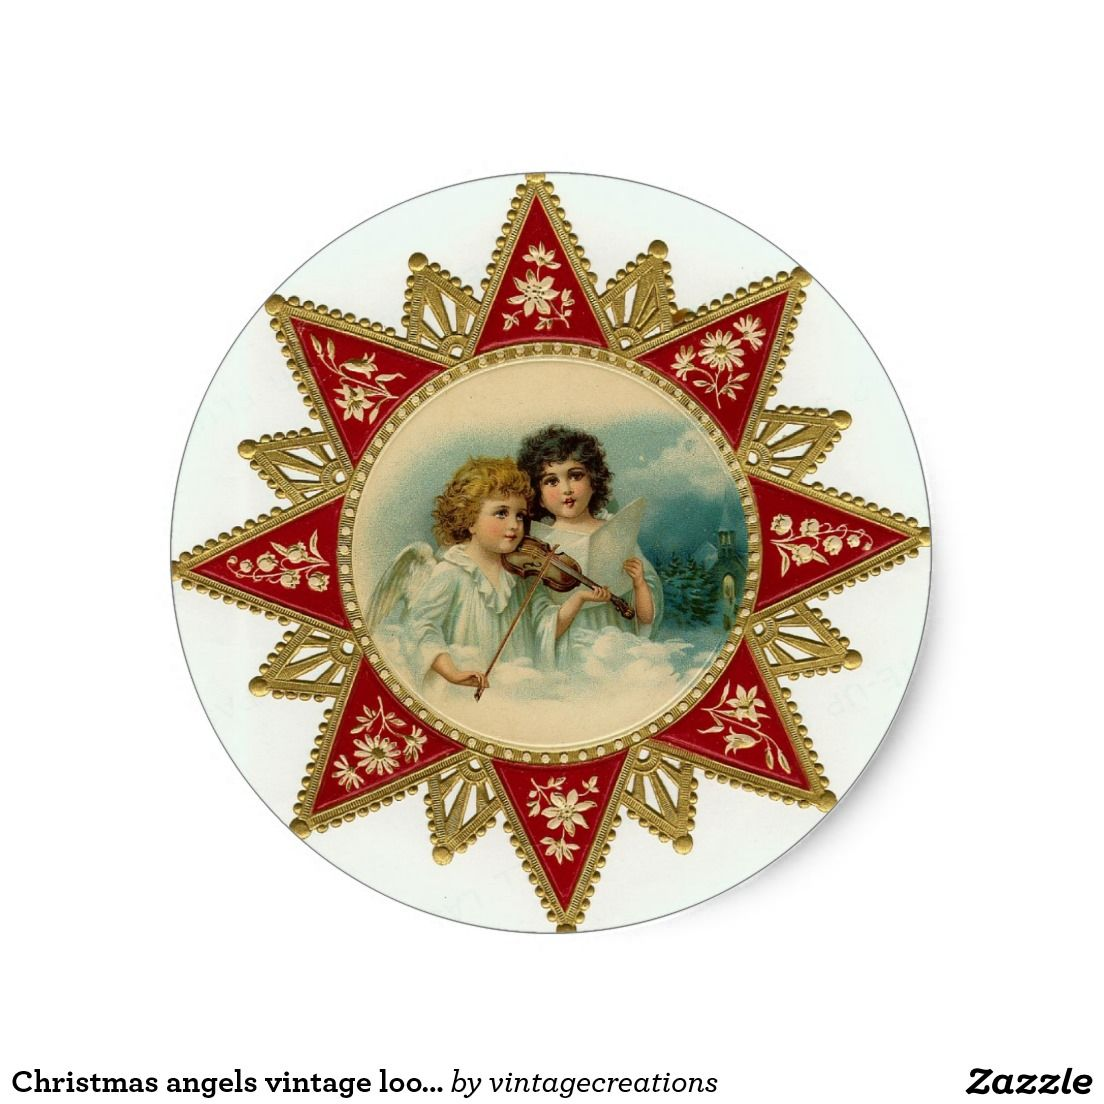 Christmas angels vintage look stickers